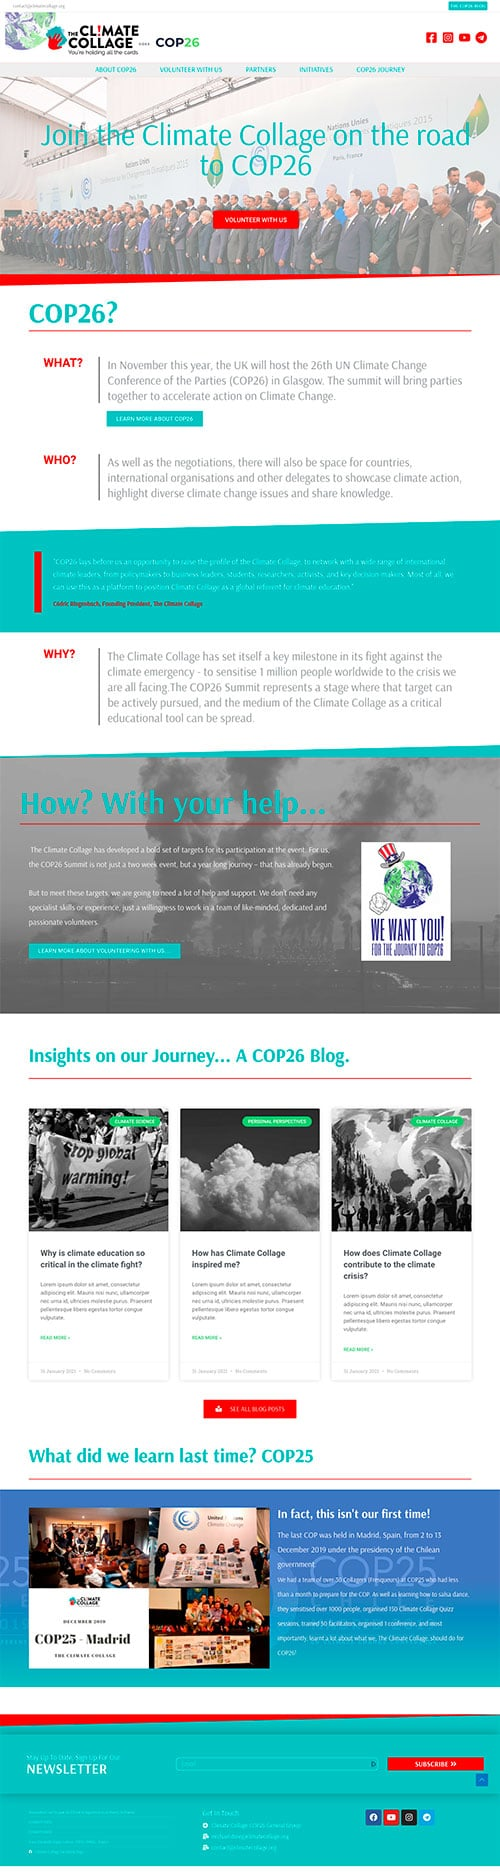 Full screenshot of a medium sized charity website homepage to engage and recruit clients